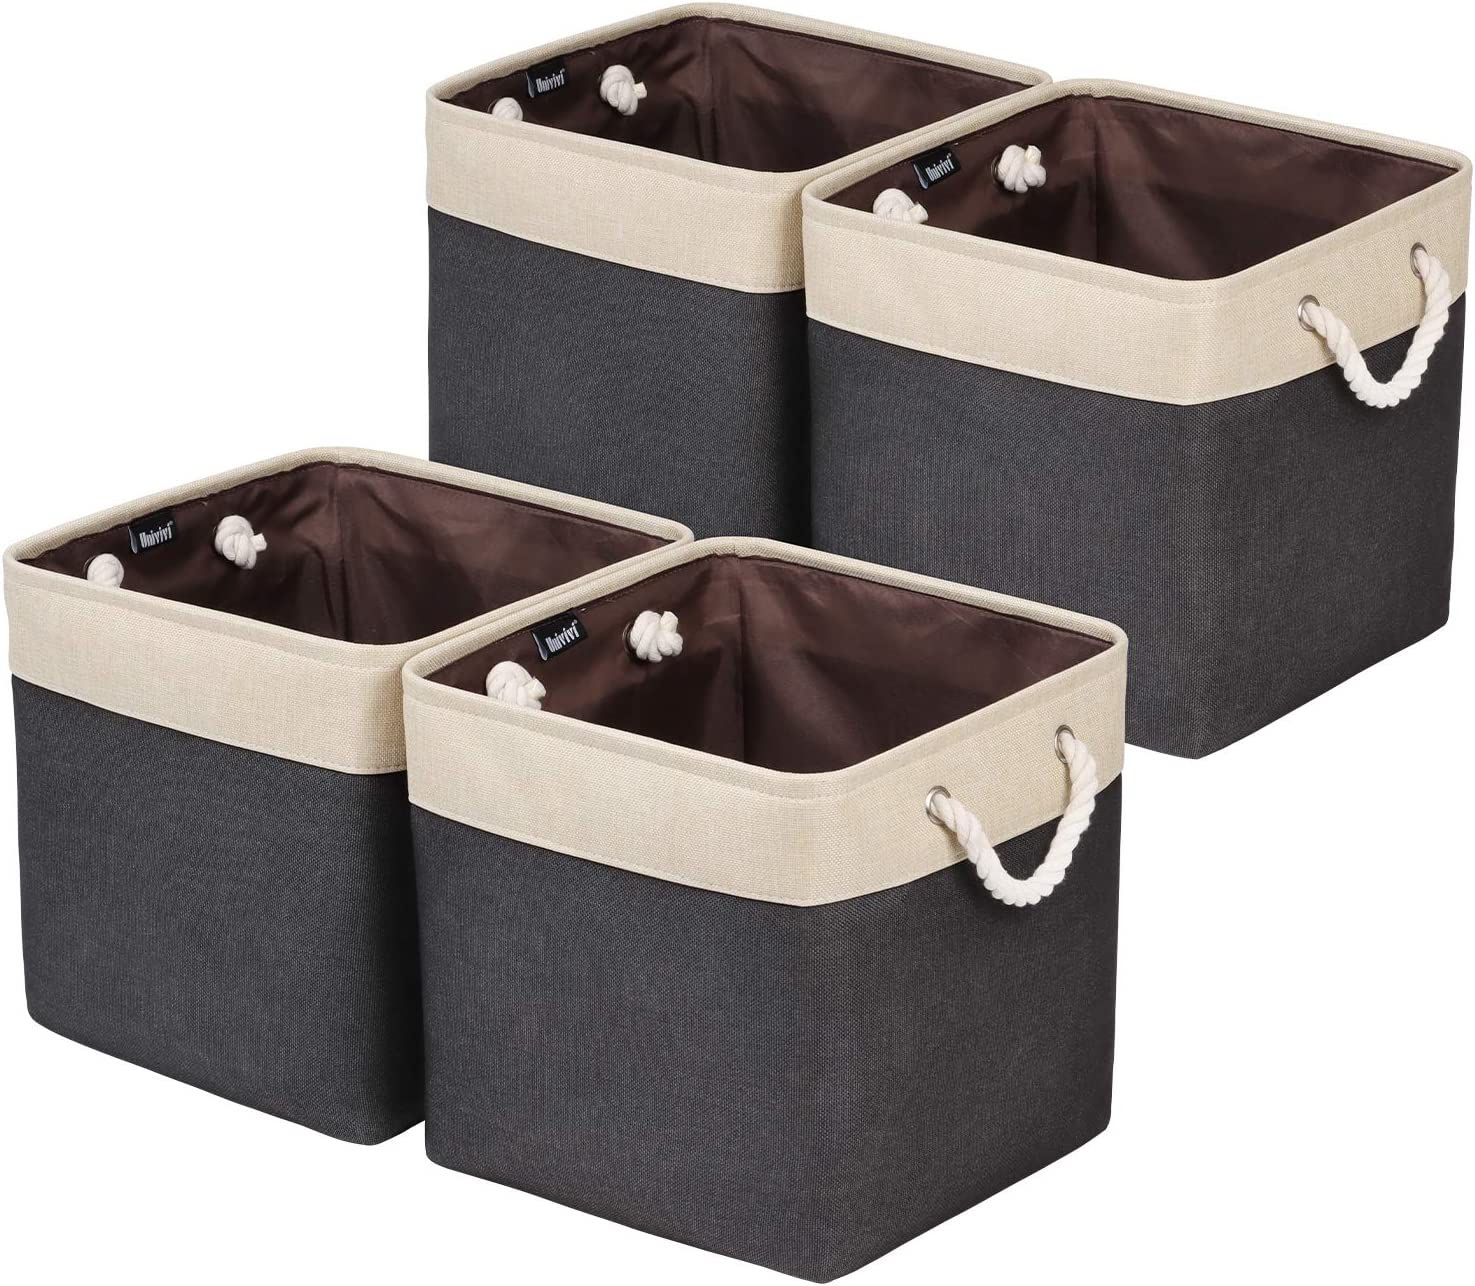 Univivi Foldable Storage Bin [4-Pack] Collapsible Cube Storage Basket with Sturdy Cotton Carry Handles for Shelf Closet Nursery Home Office Organizing (Black, 13 inch)